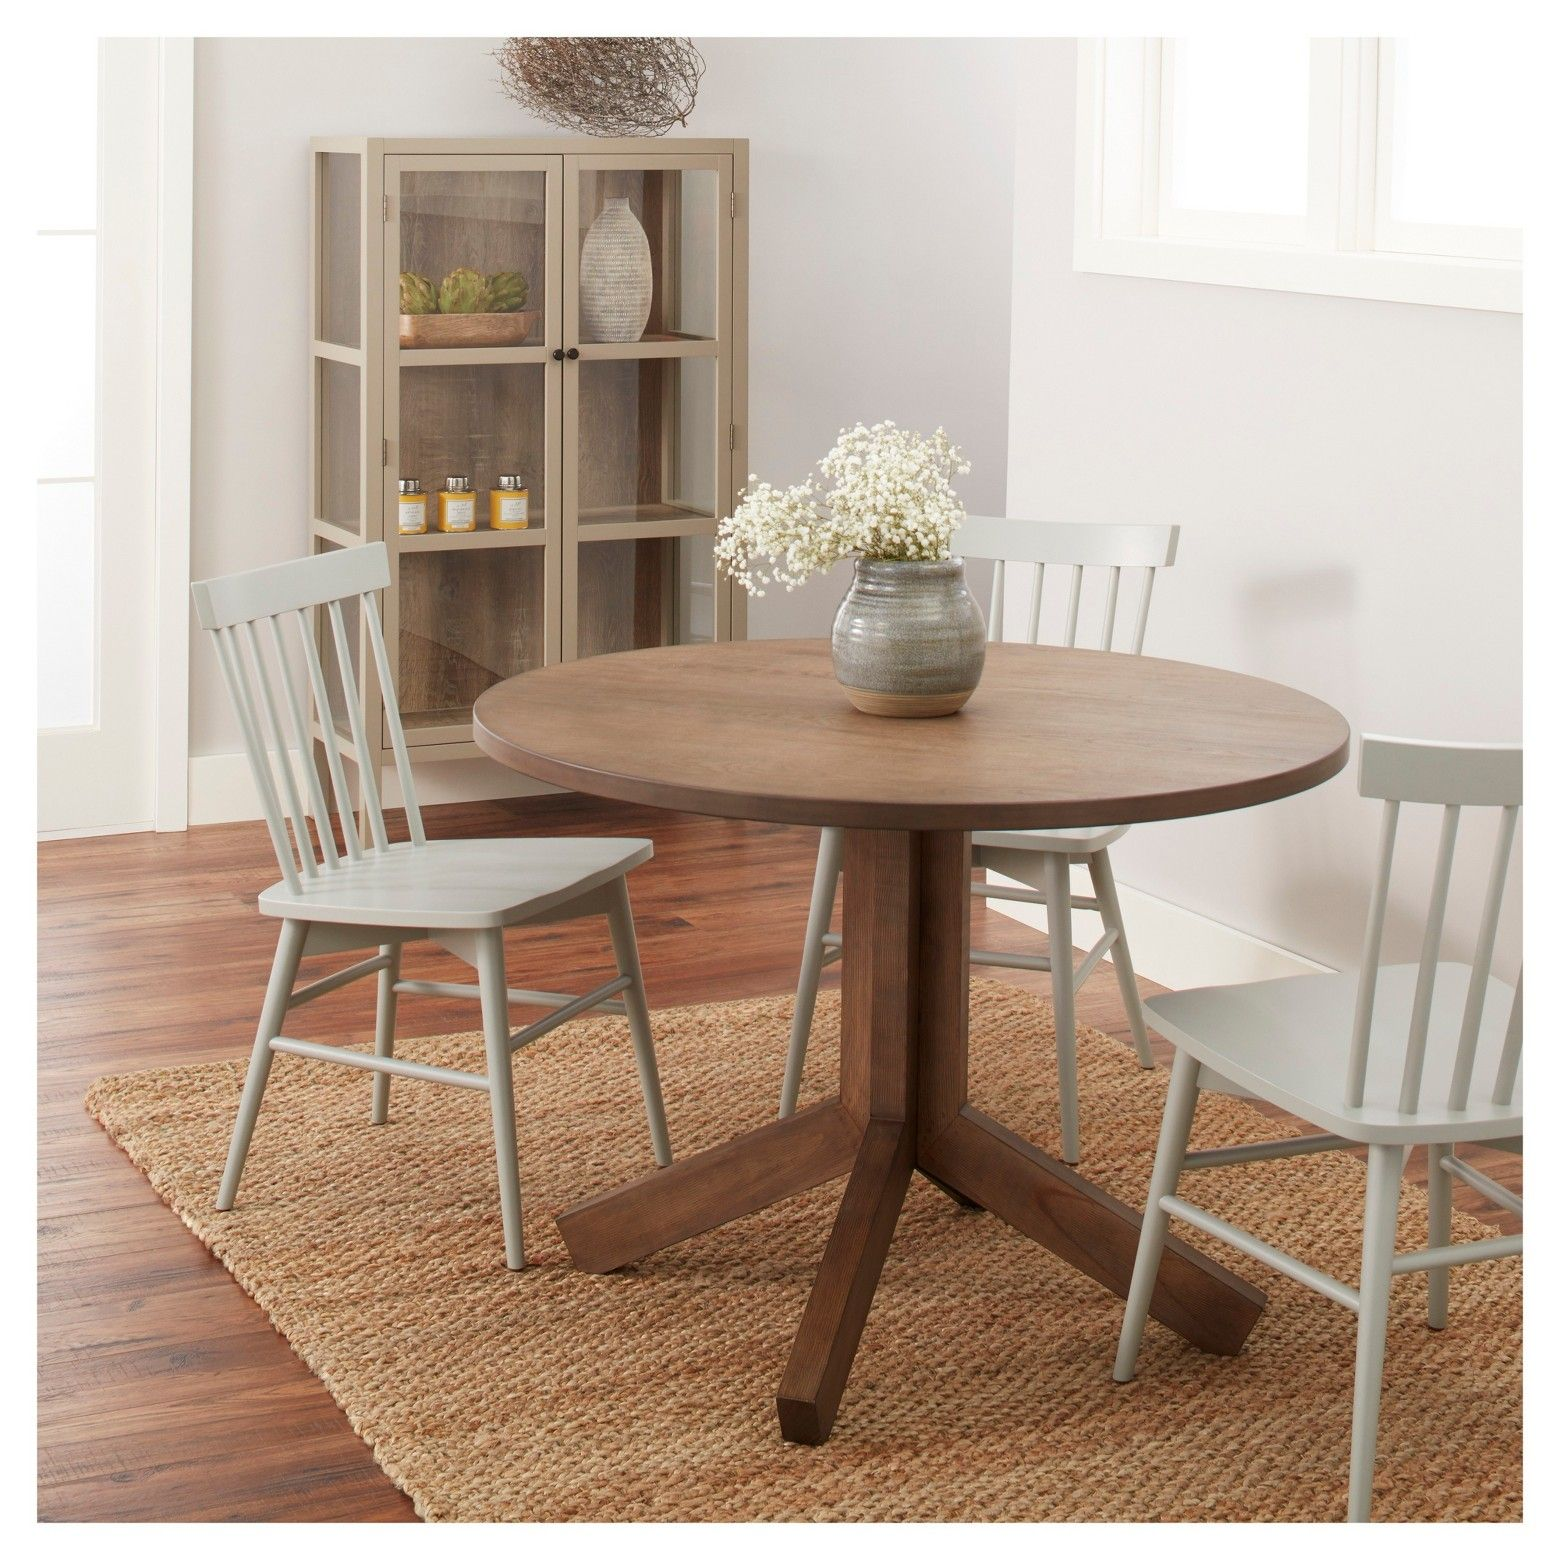 Newfield 42 Round Farmhouse Dining Table Gray Wash Threshold Dining Table Home Decor Target Home Decor